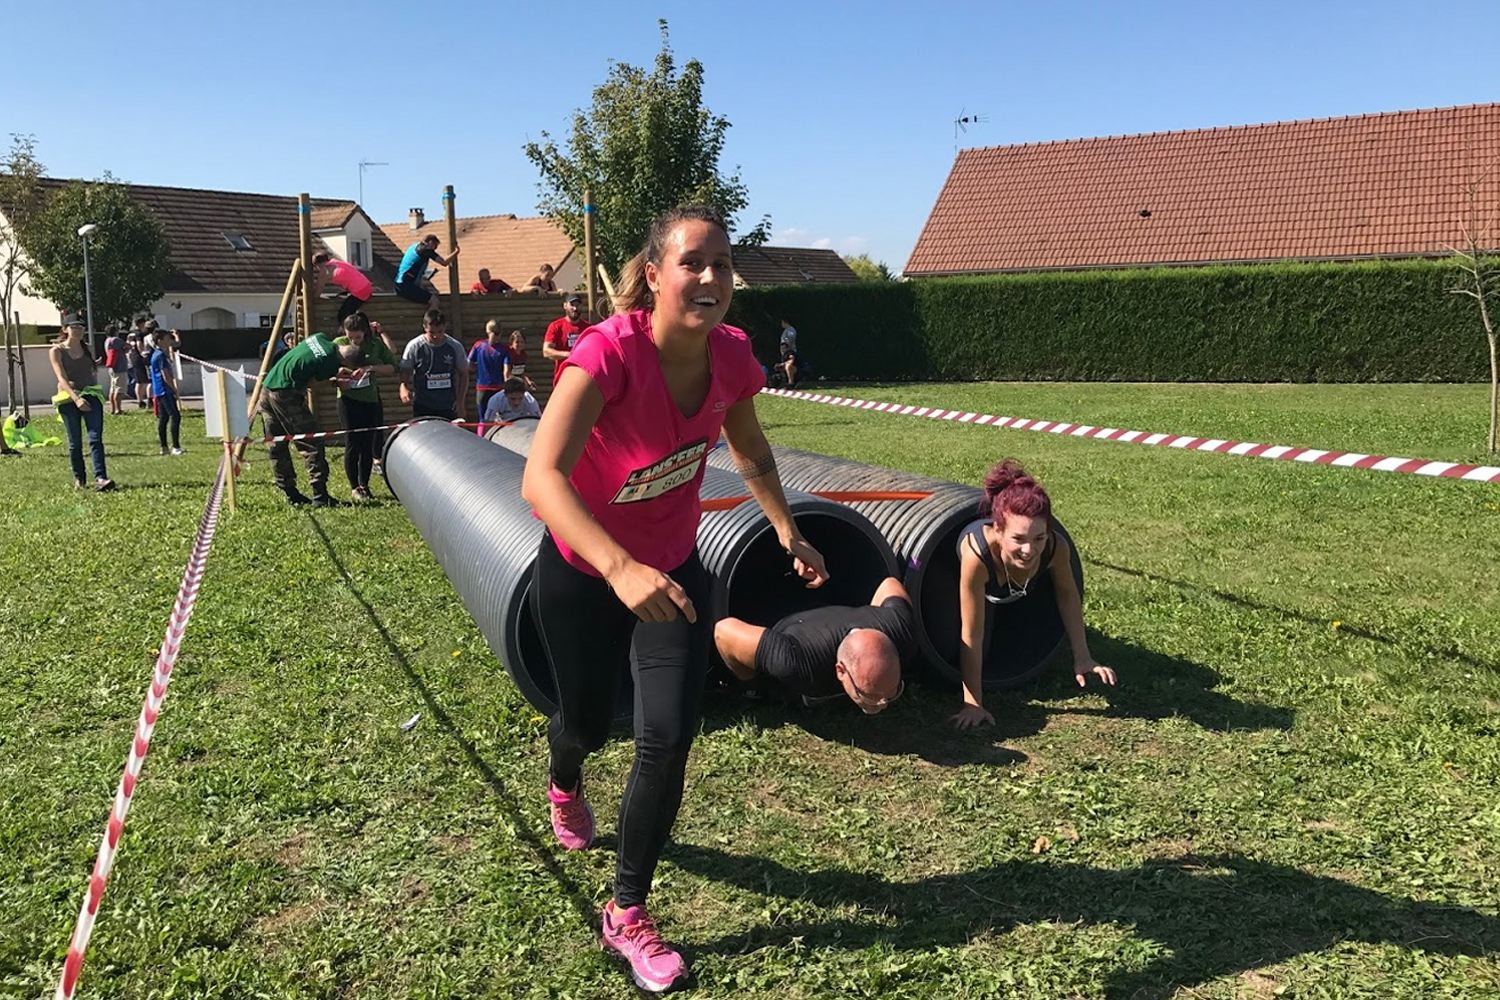 LANSFER_Obstacle_Tuyaux_2017_02